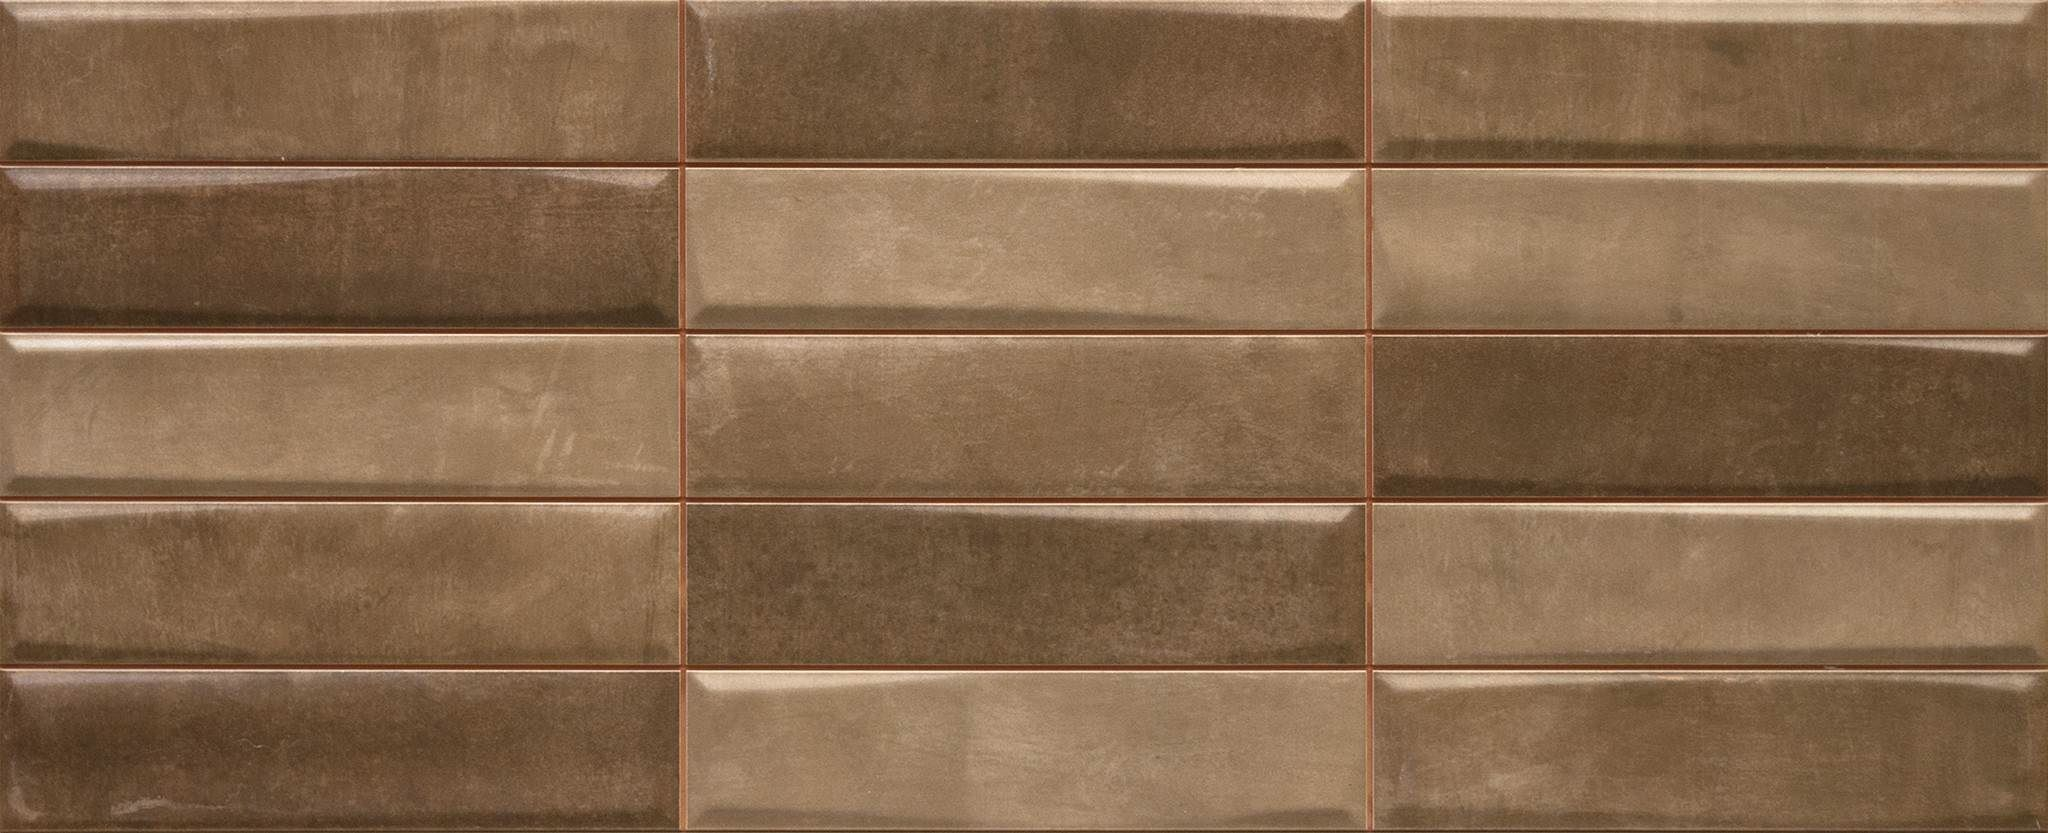 SMART BROWN 20X50 - Boite de 1.20 m2